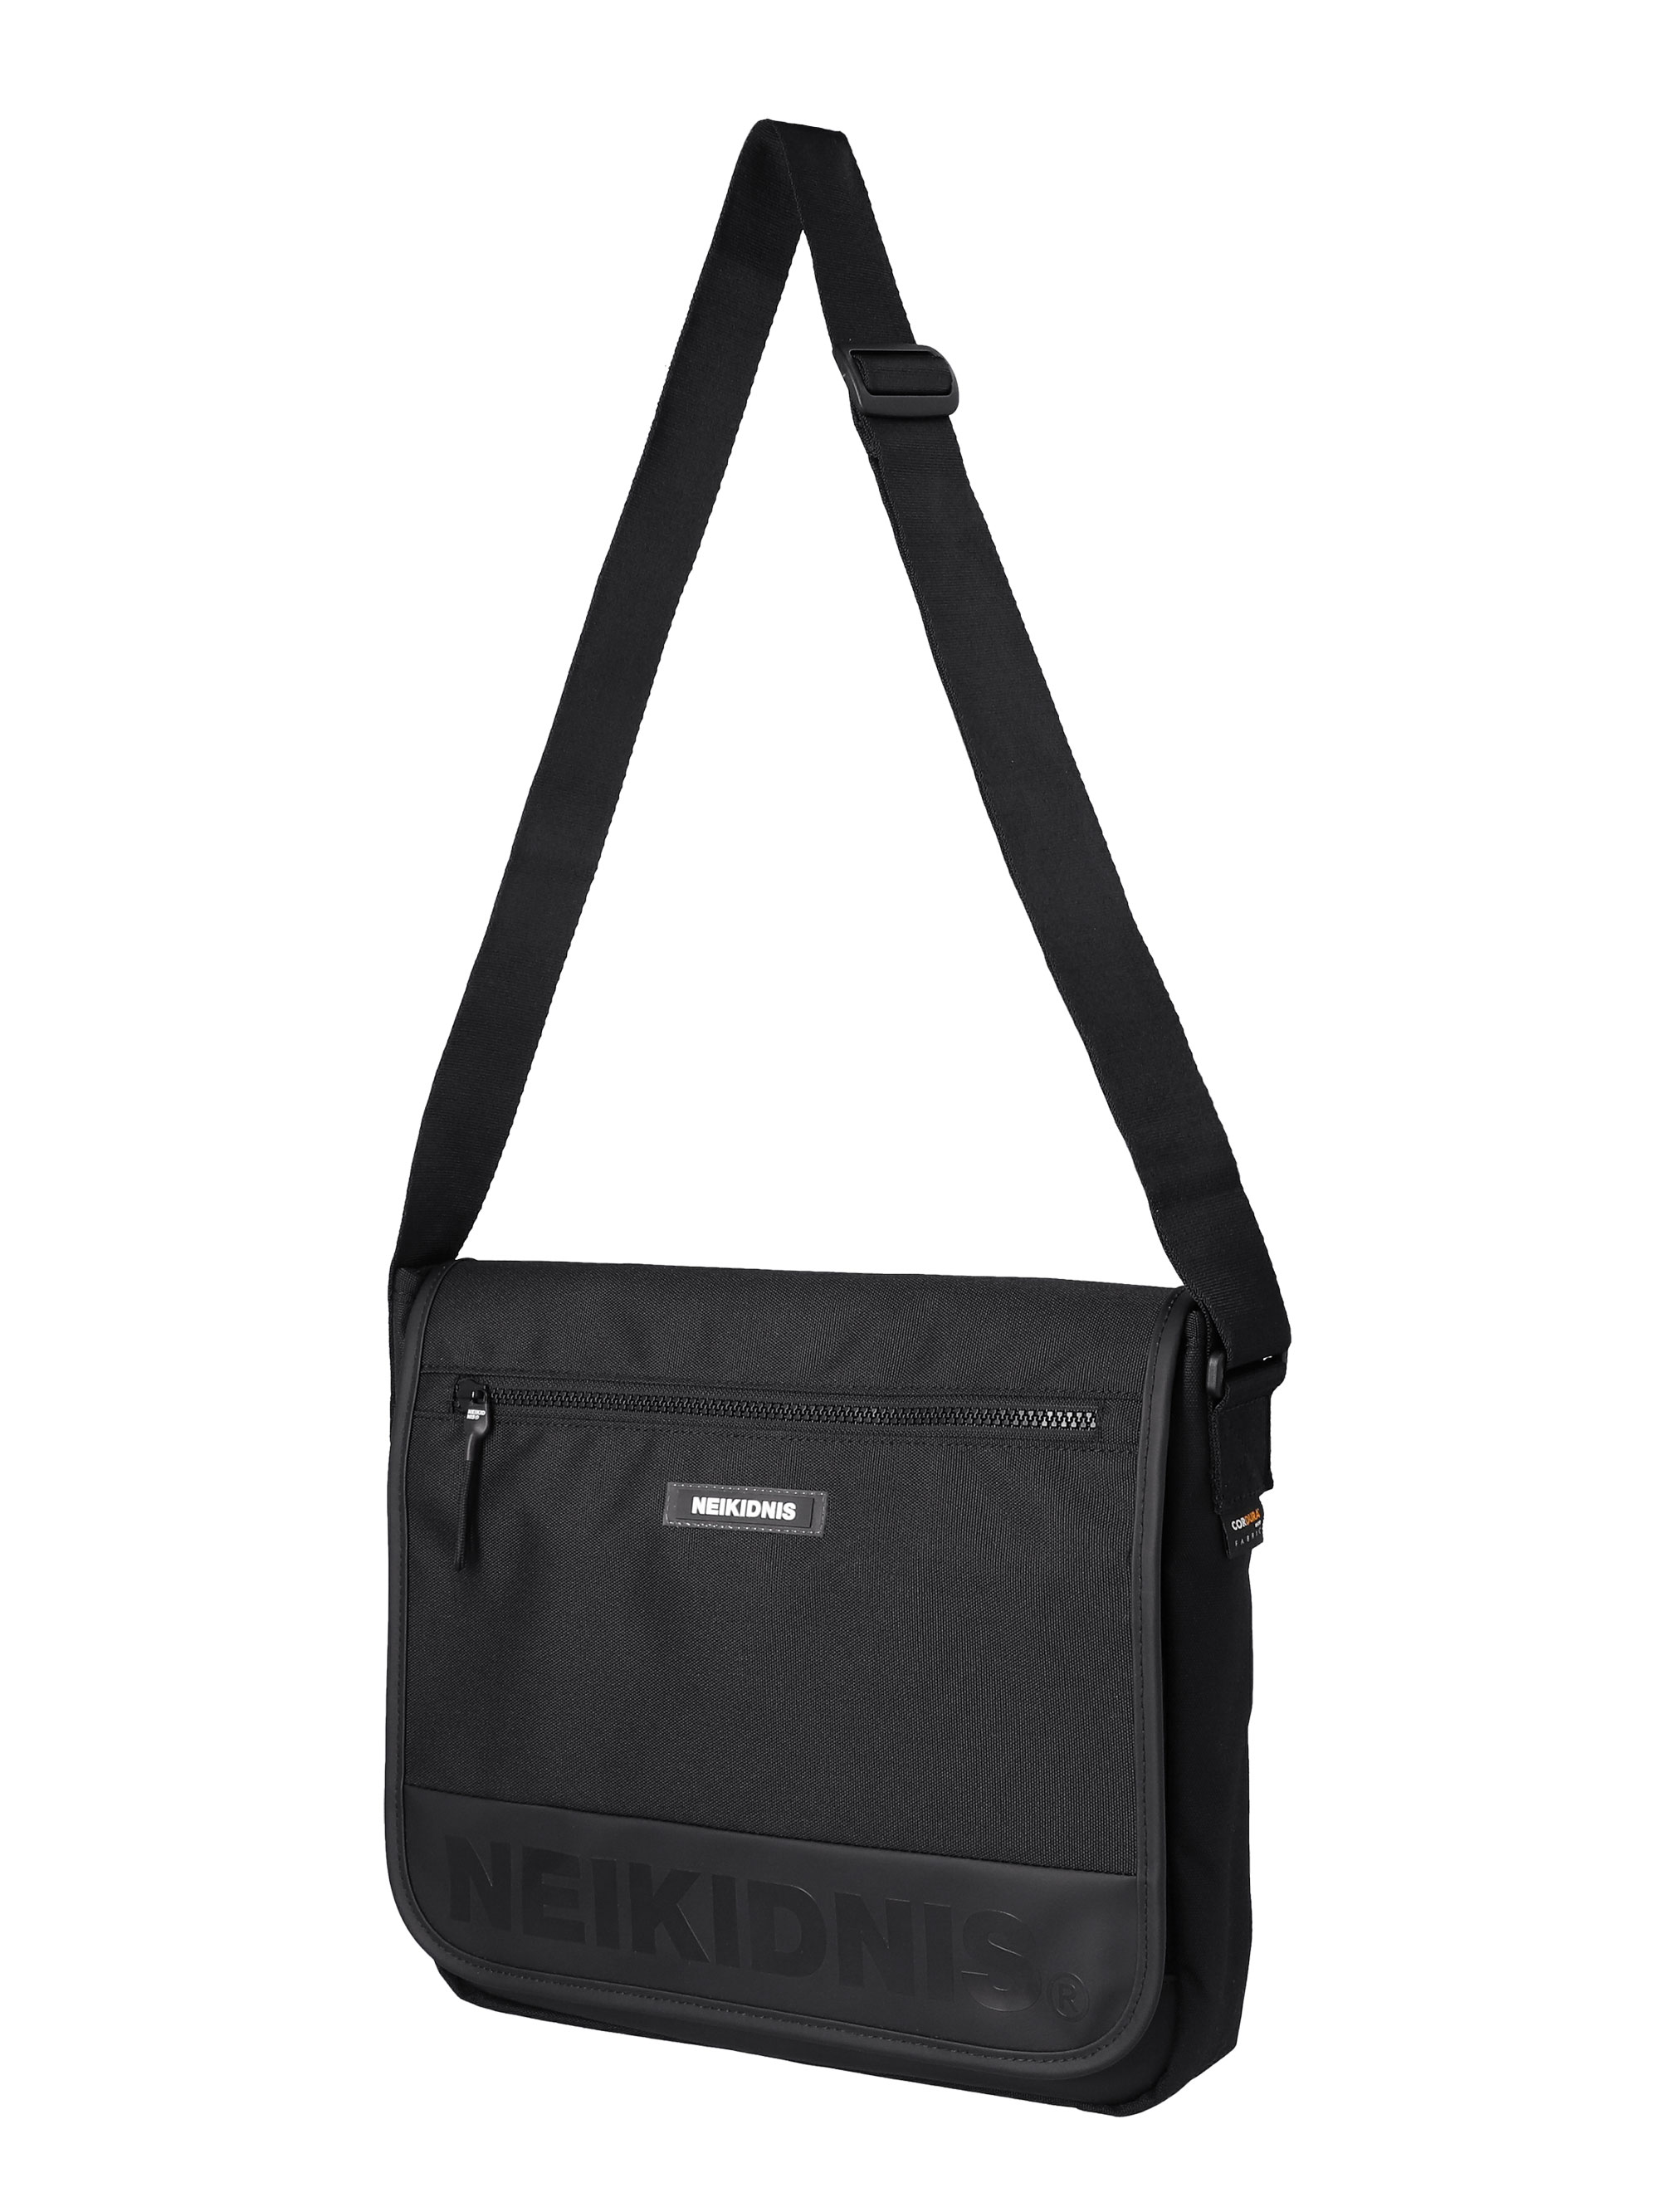 ACADEMIC MESSENGER BAG / BLACK